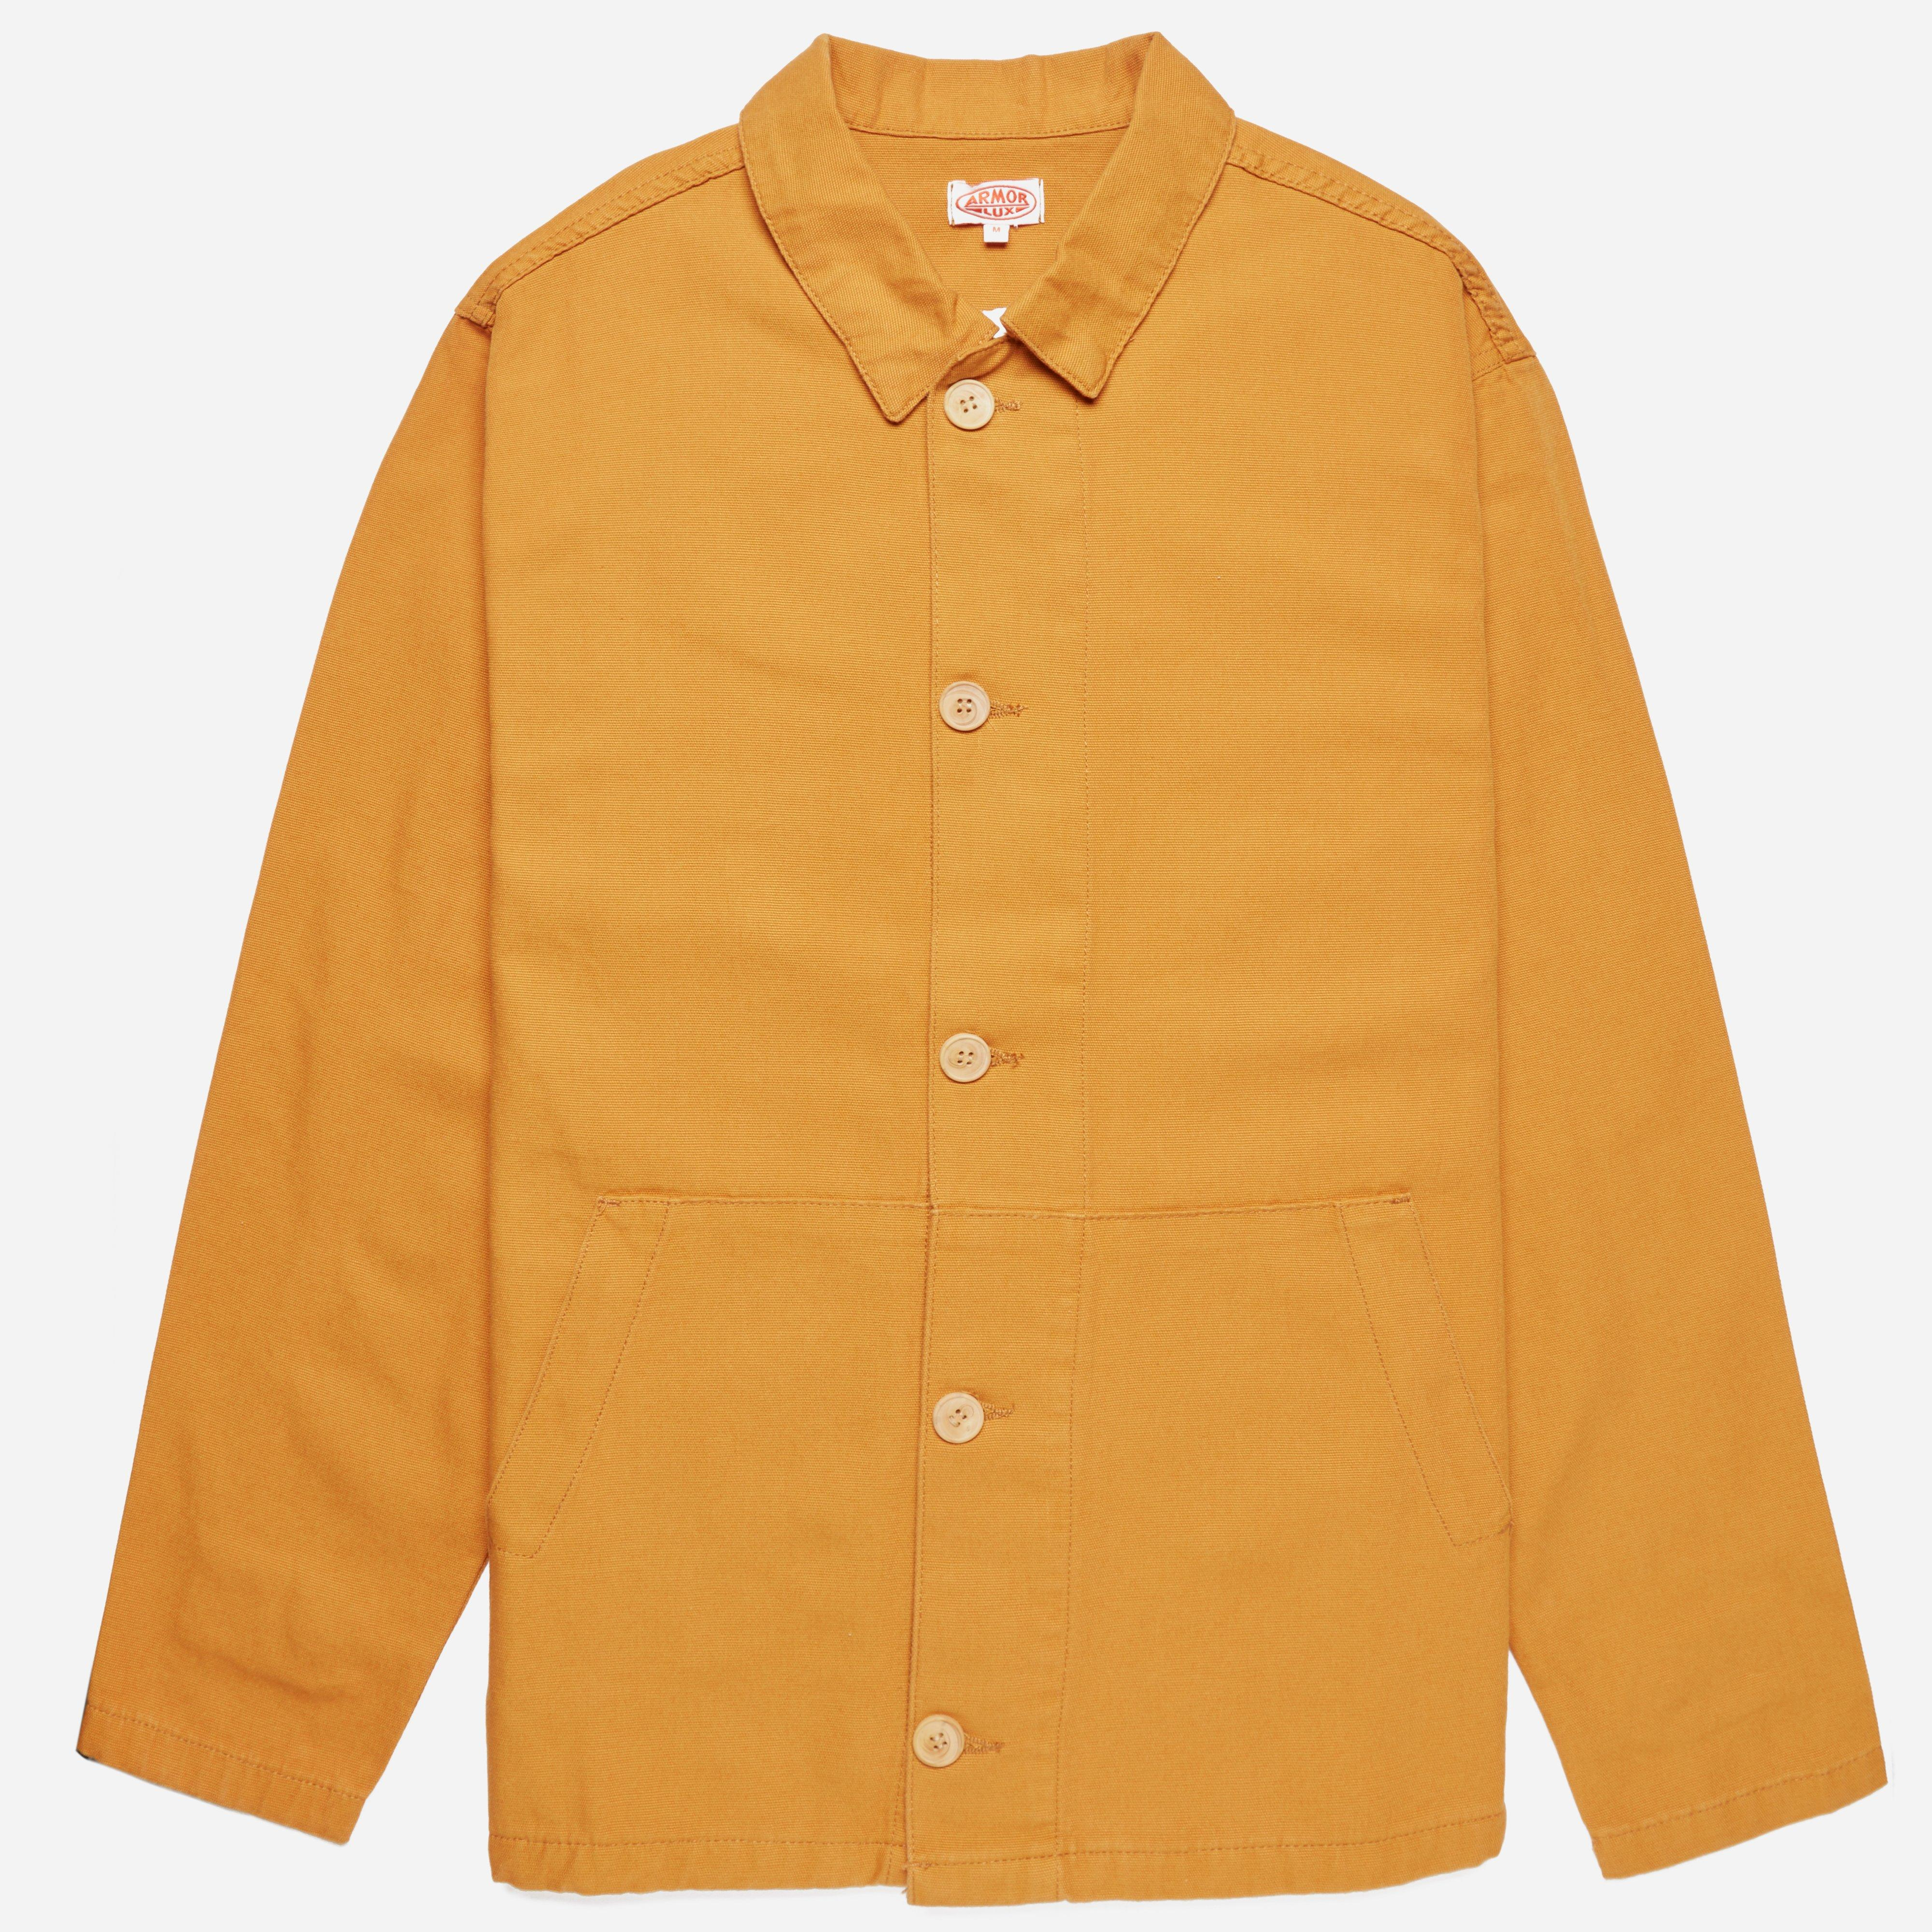 Armor Lux 72832 Buttoned Fisherman Jacket